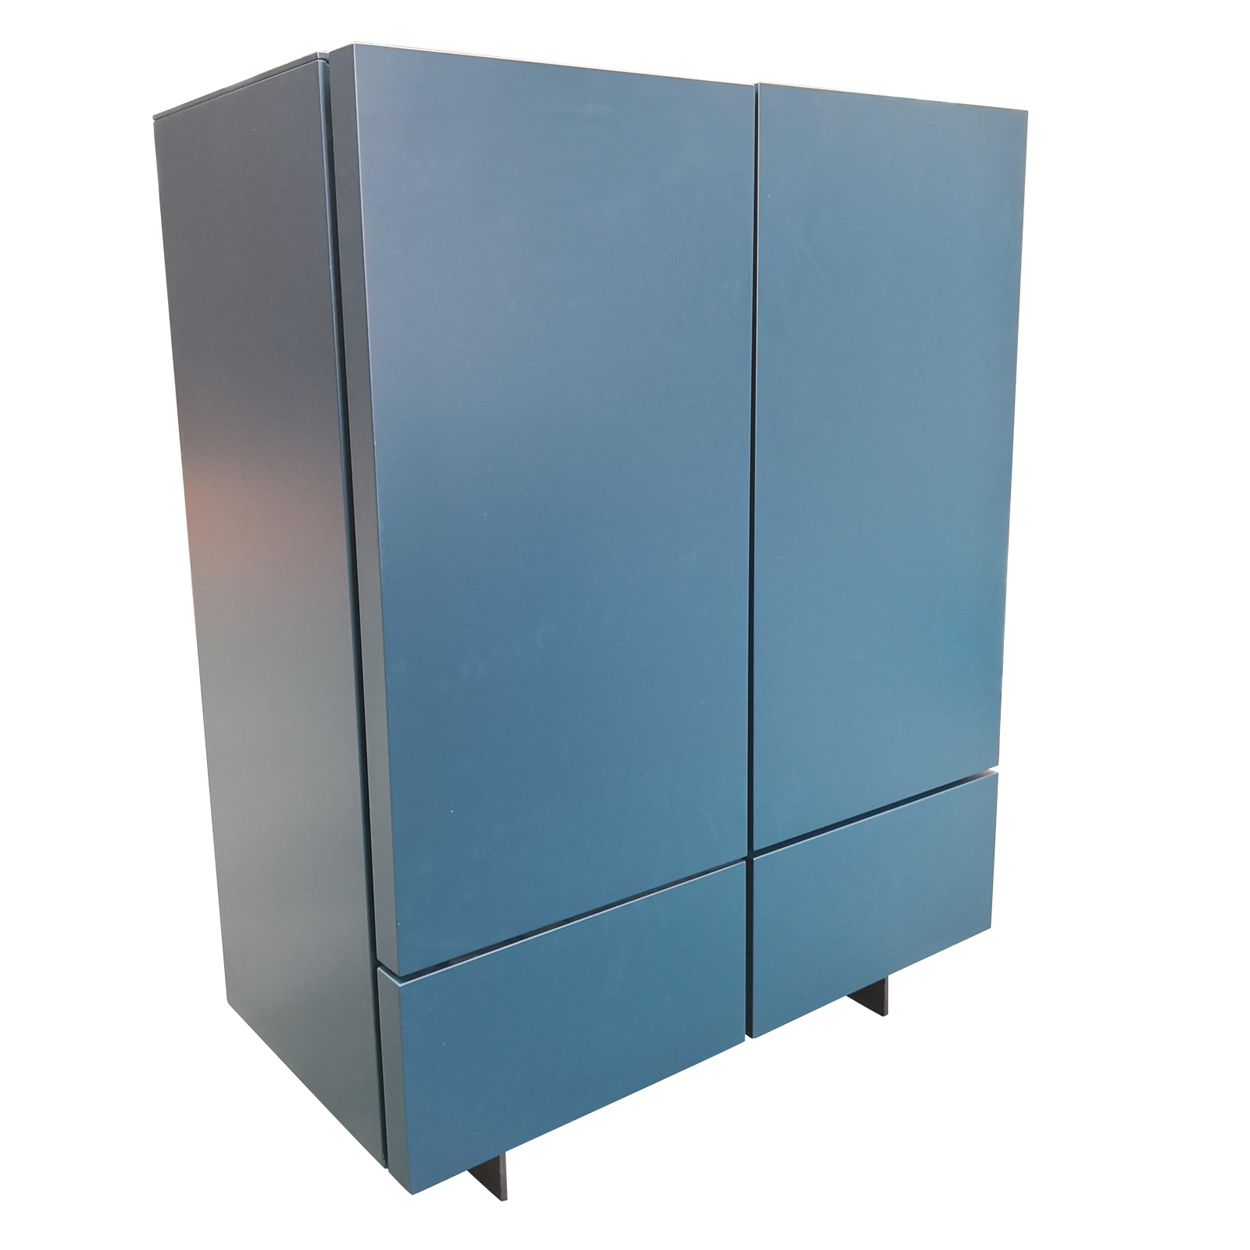 Two Design Lovers teal storage cabinet side angle view